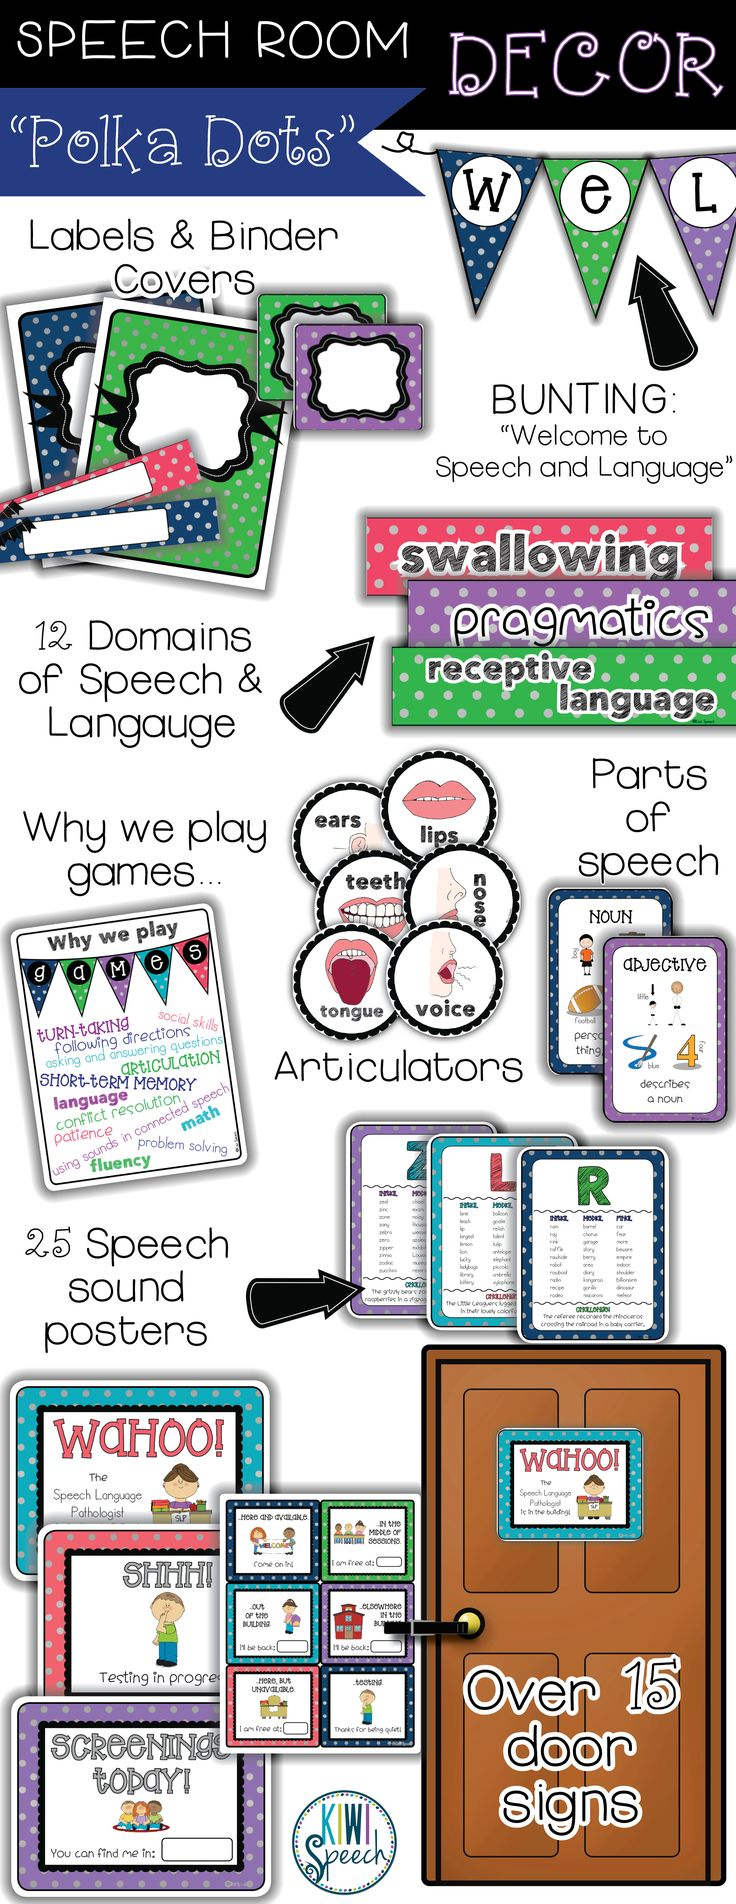 """Speech Therapy Room Decor: """"Polka Dots"""" - blue, green, purple, & coral themed decor kit for speech therapy rooms. Includes labels, binder covers & spines, bunting, domains of speech and language, articulators, visual aids, speech sound posters, and more!"""